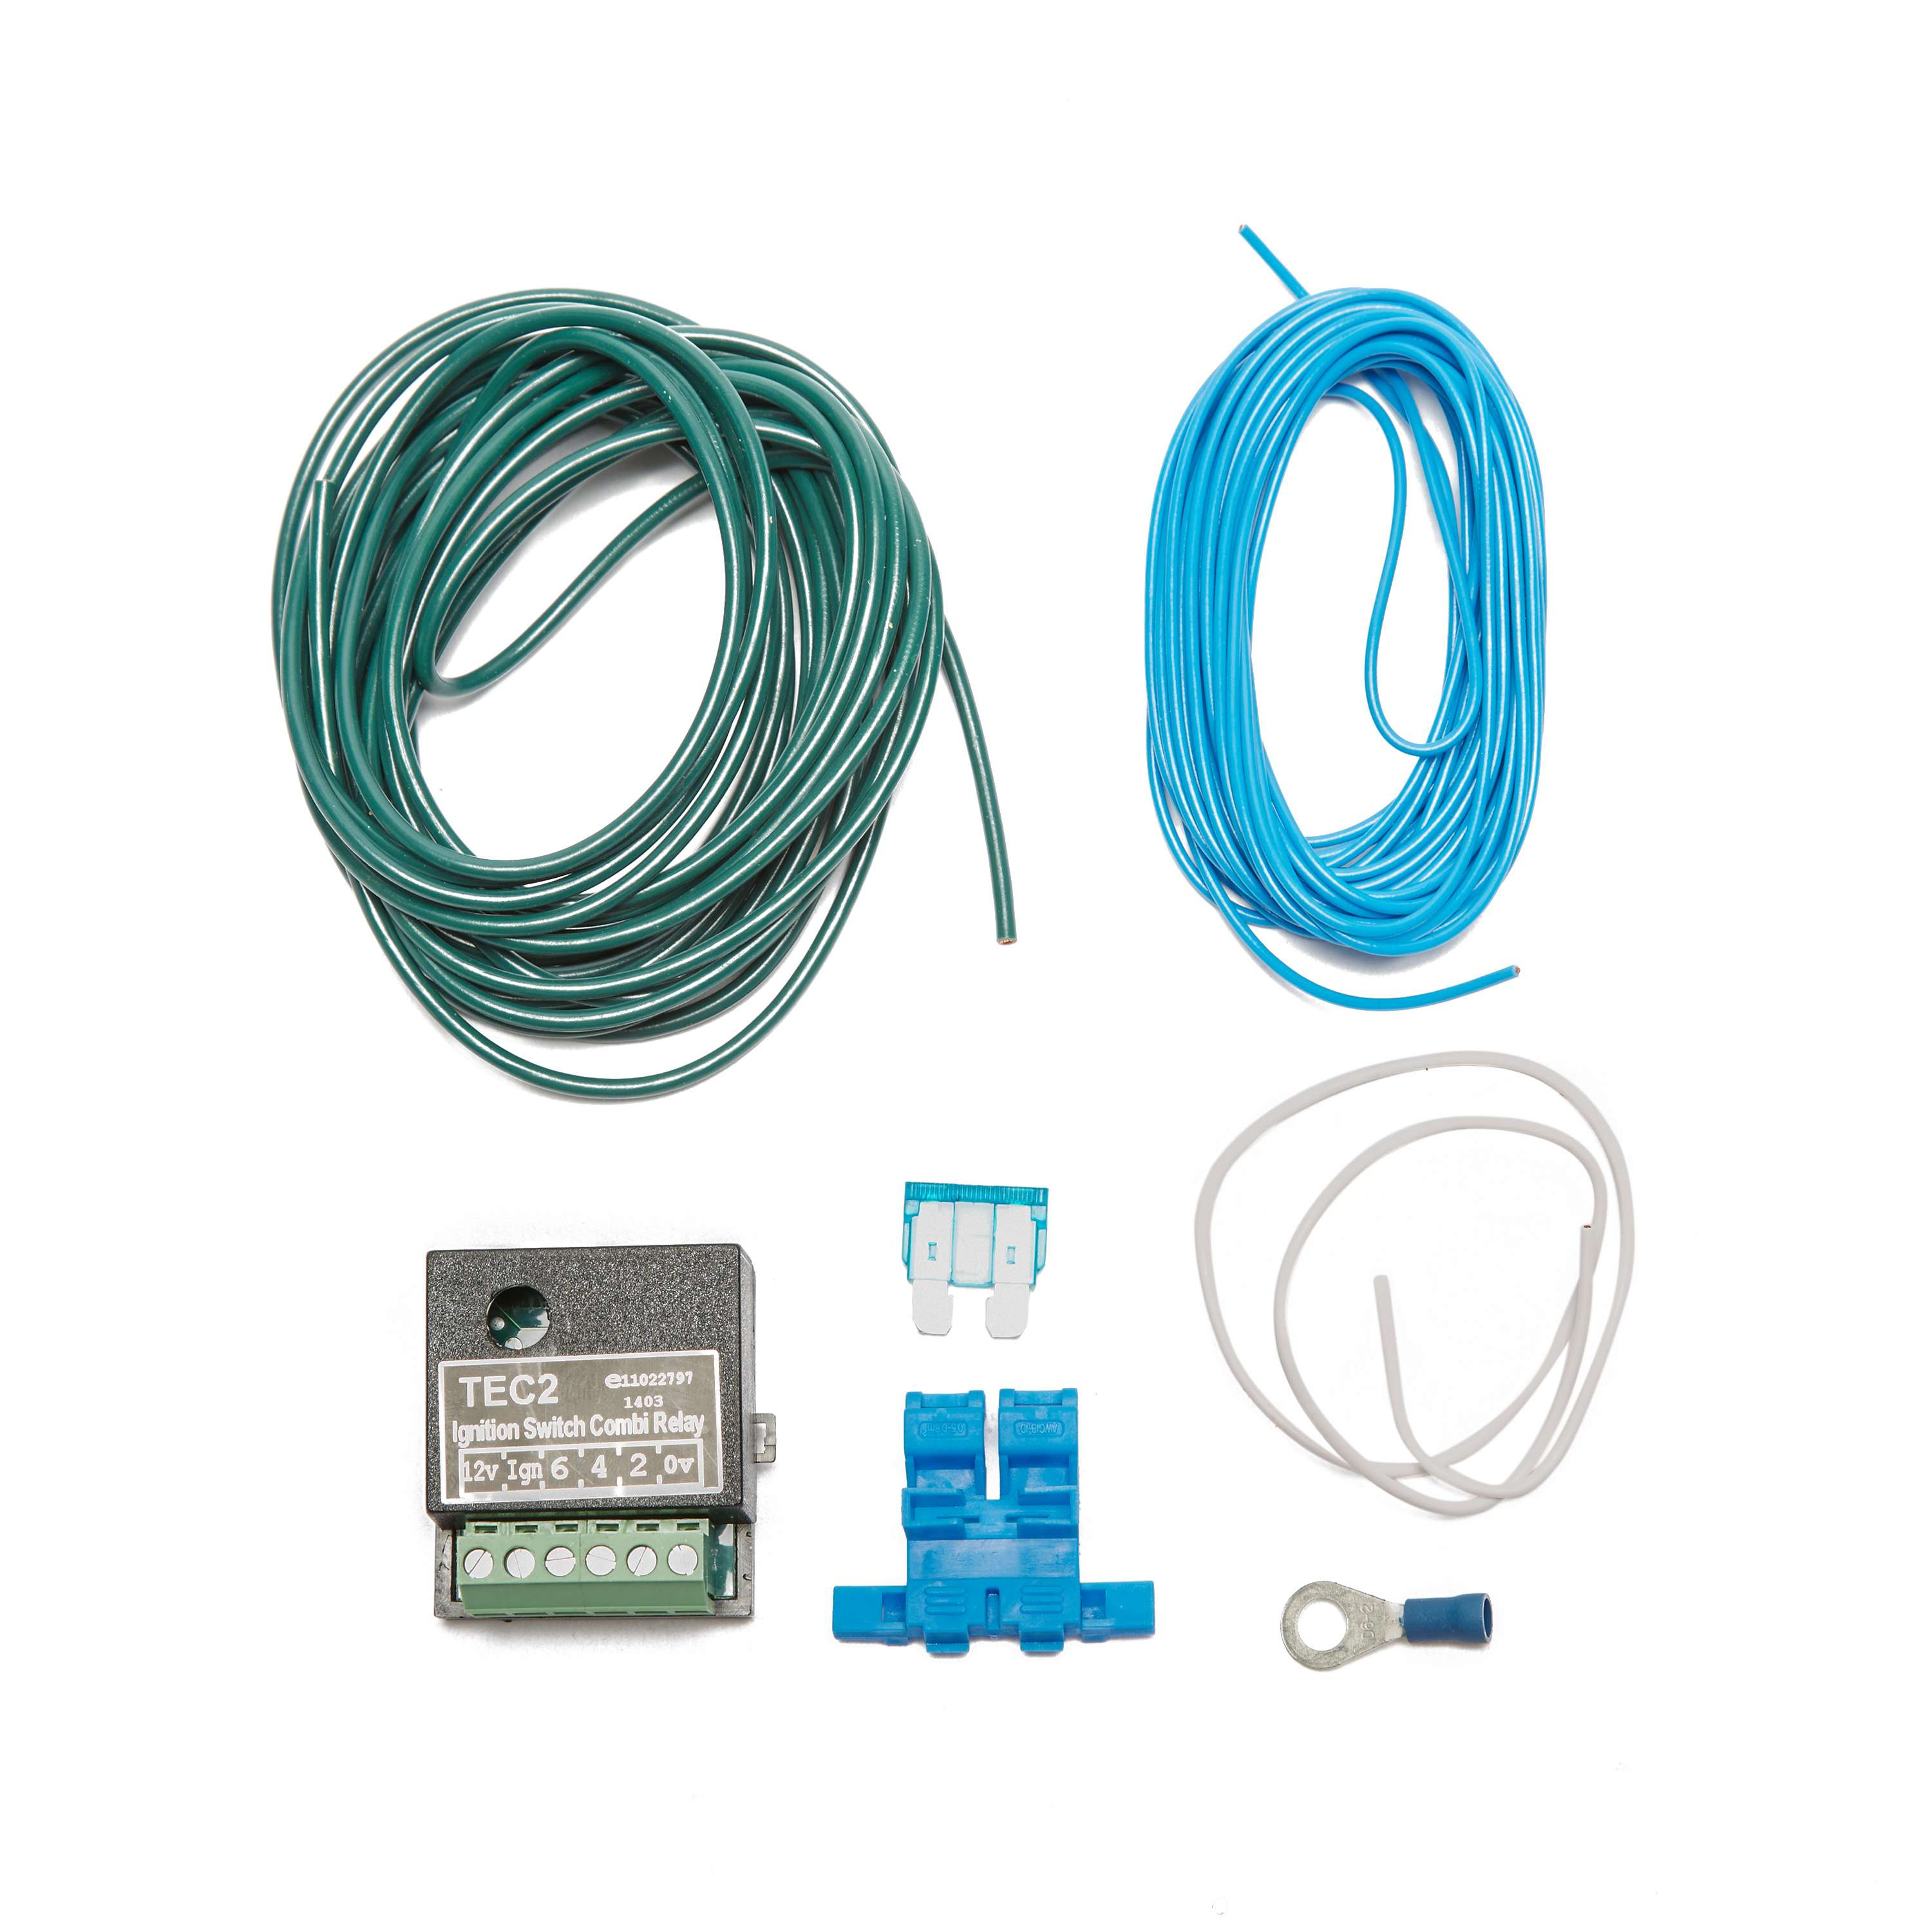 MAYPOLE Dual Charge Relay Kit